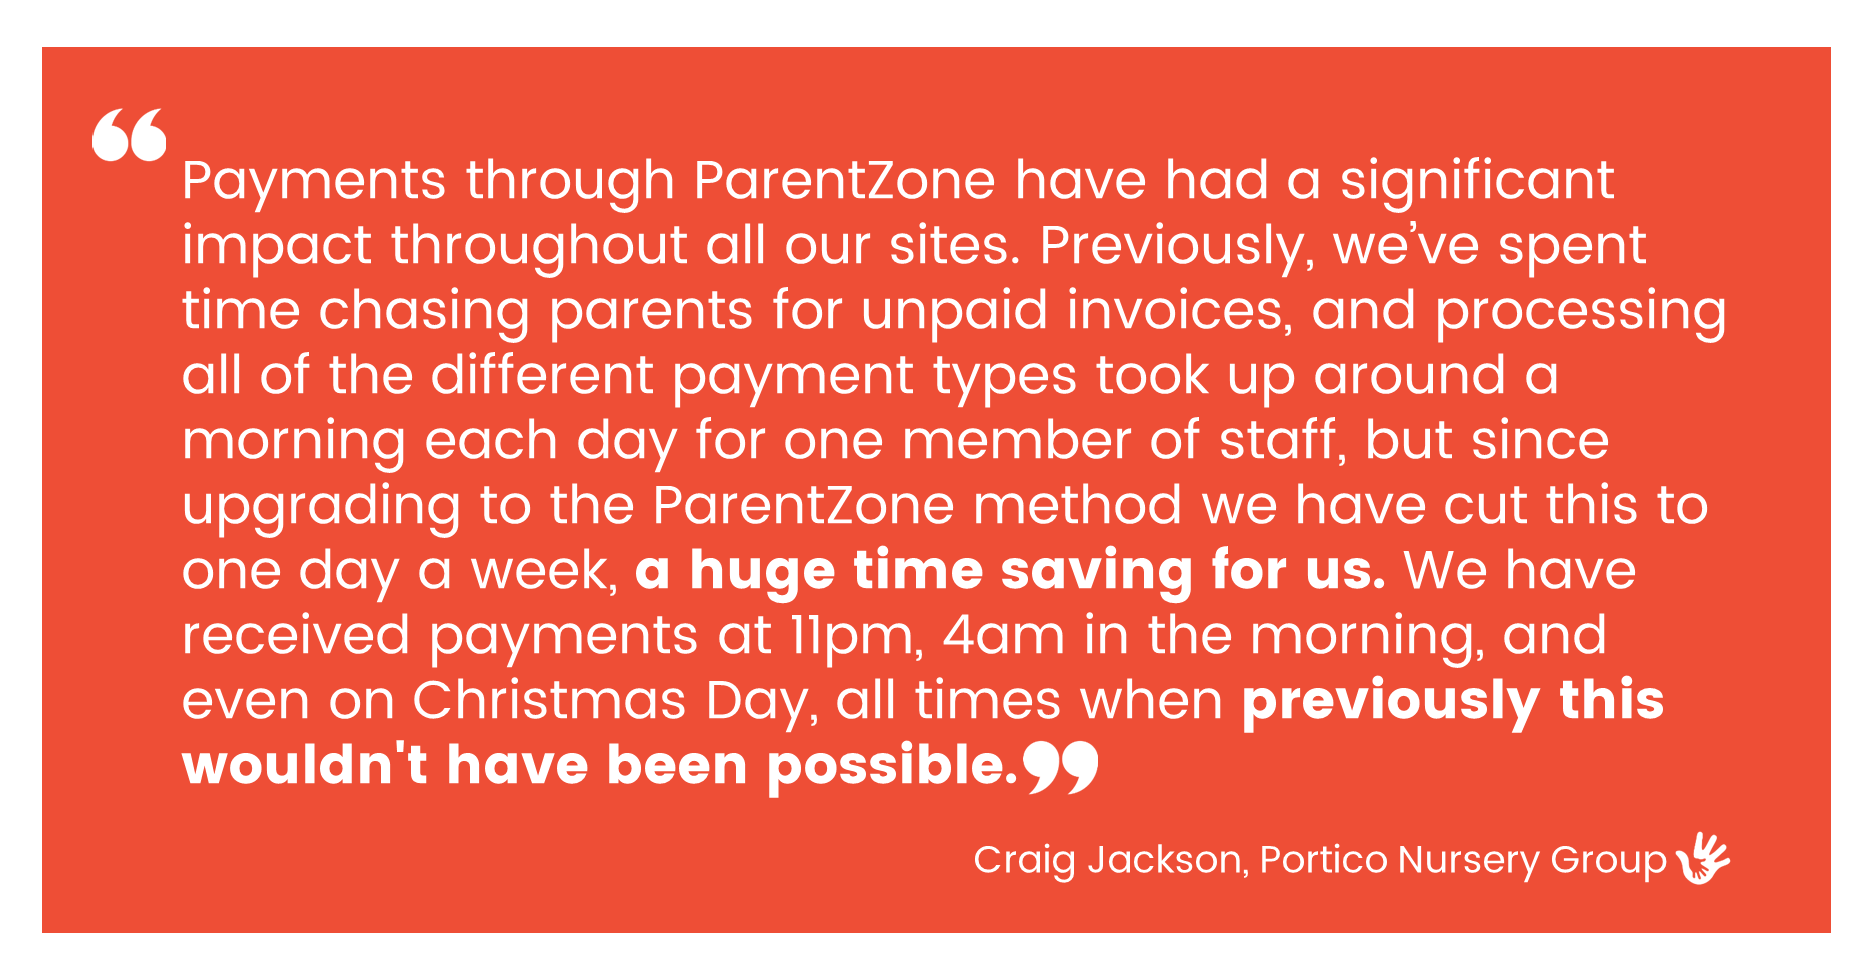 Payments through parentzone has had a significant impact throughout our sites.